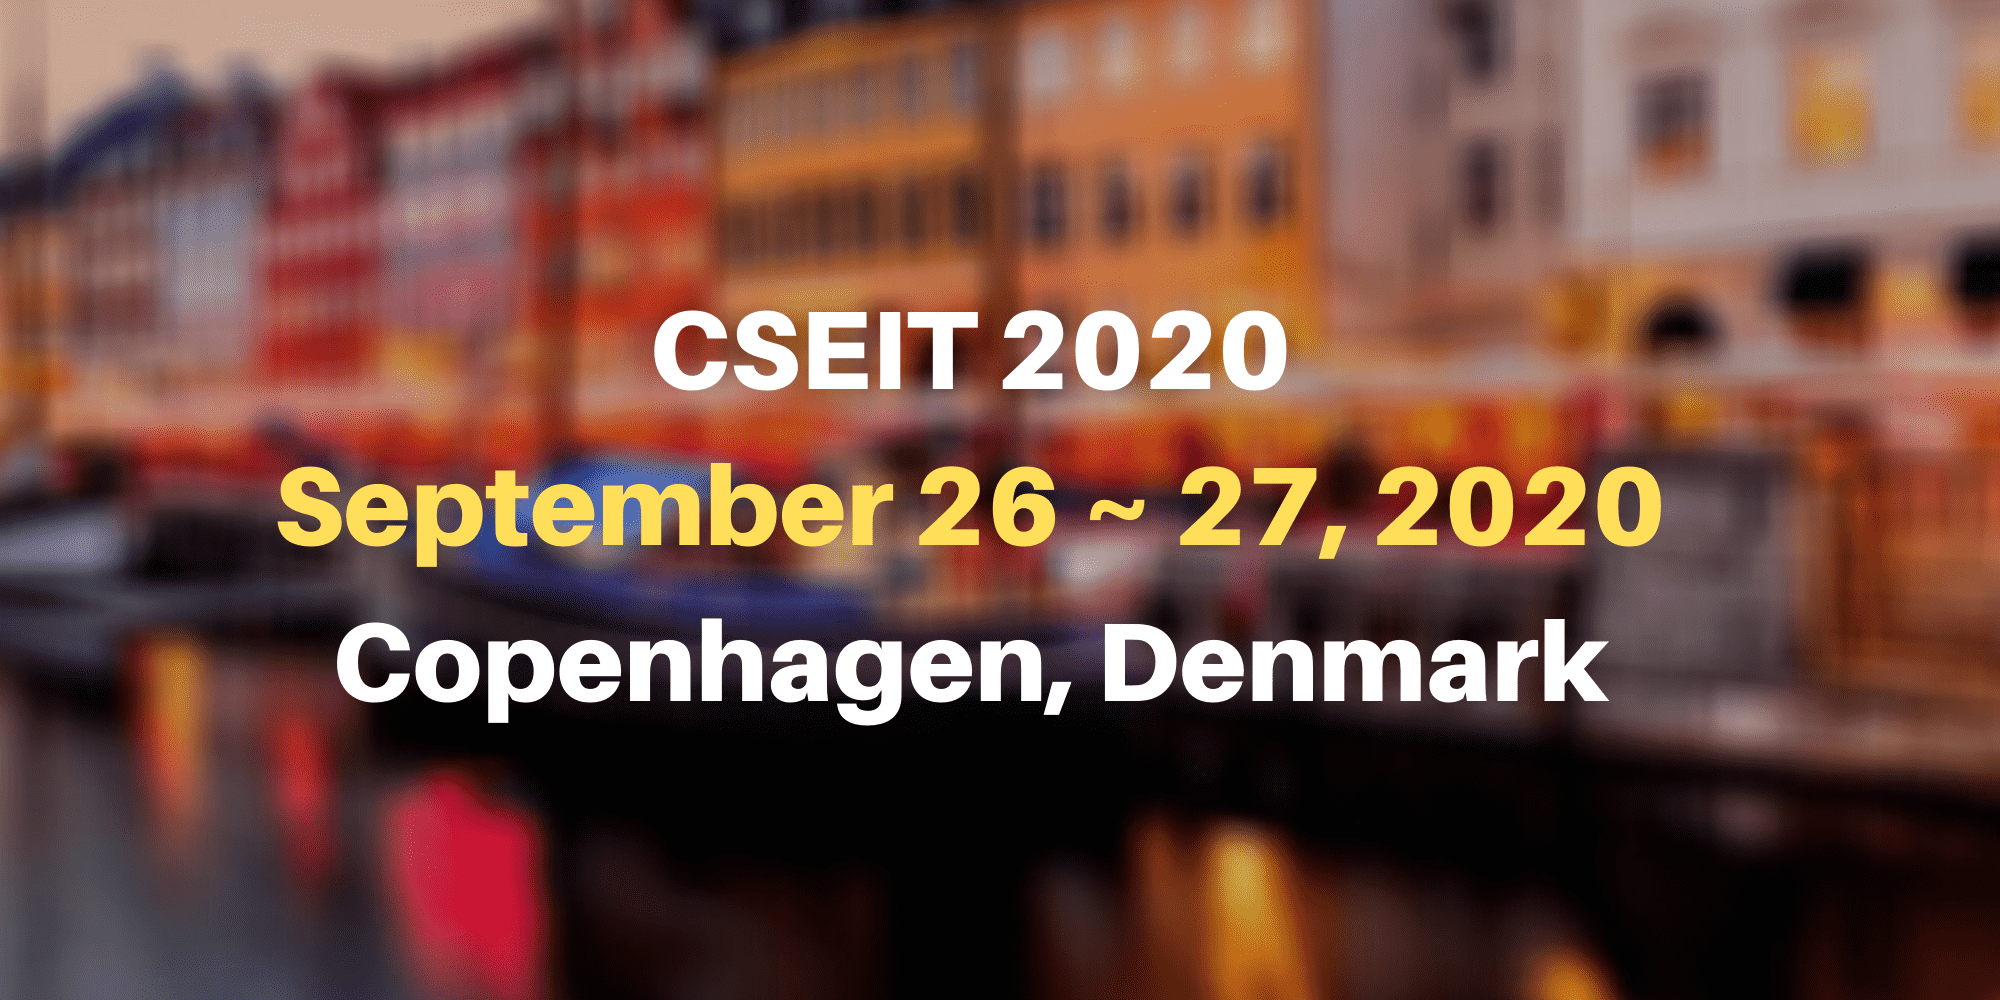 7th International Conference on Computer Science, Engineering and Information Technology (CSEIT 2020)